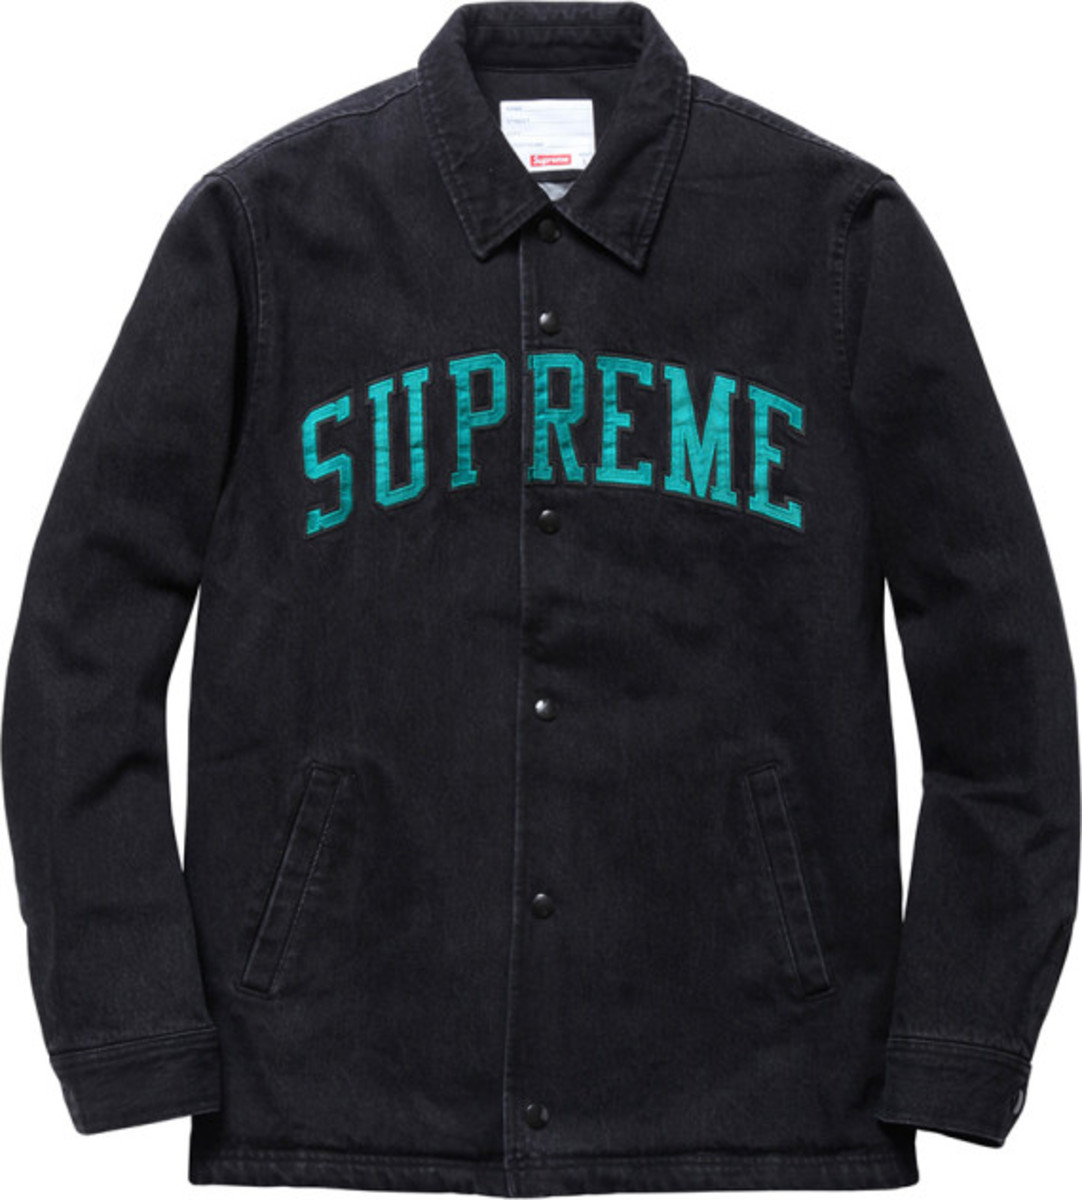 supreme-fall-winter-2013-apparel-collection-095